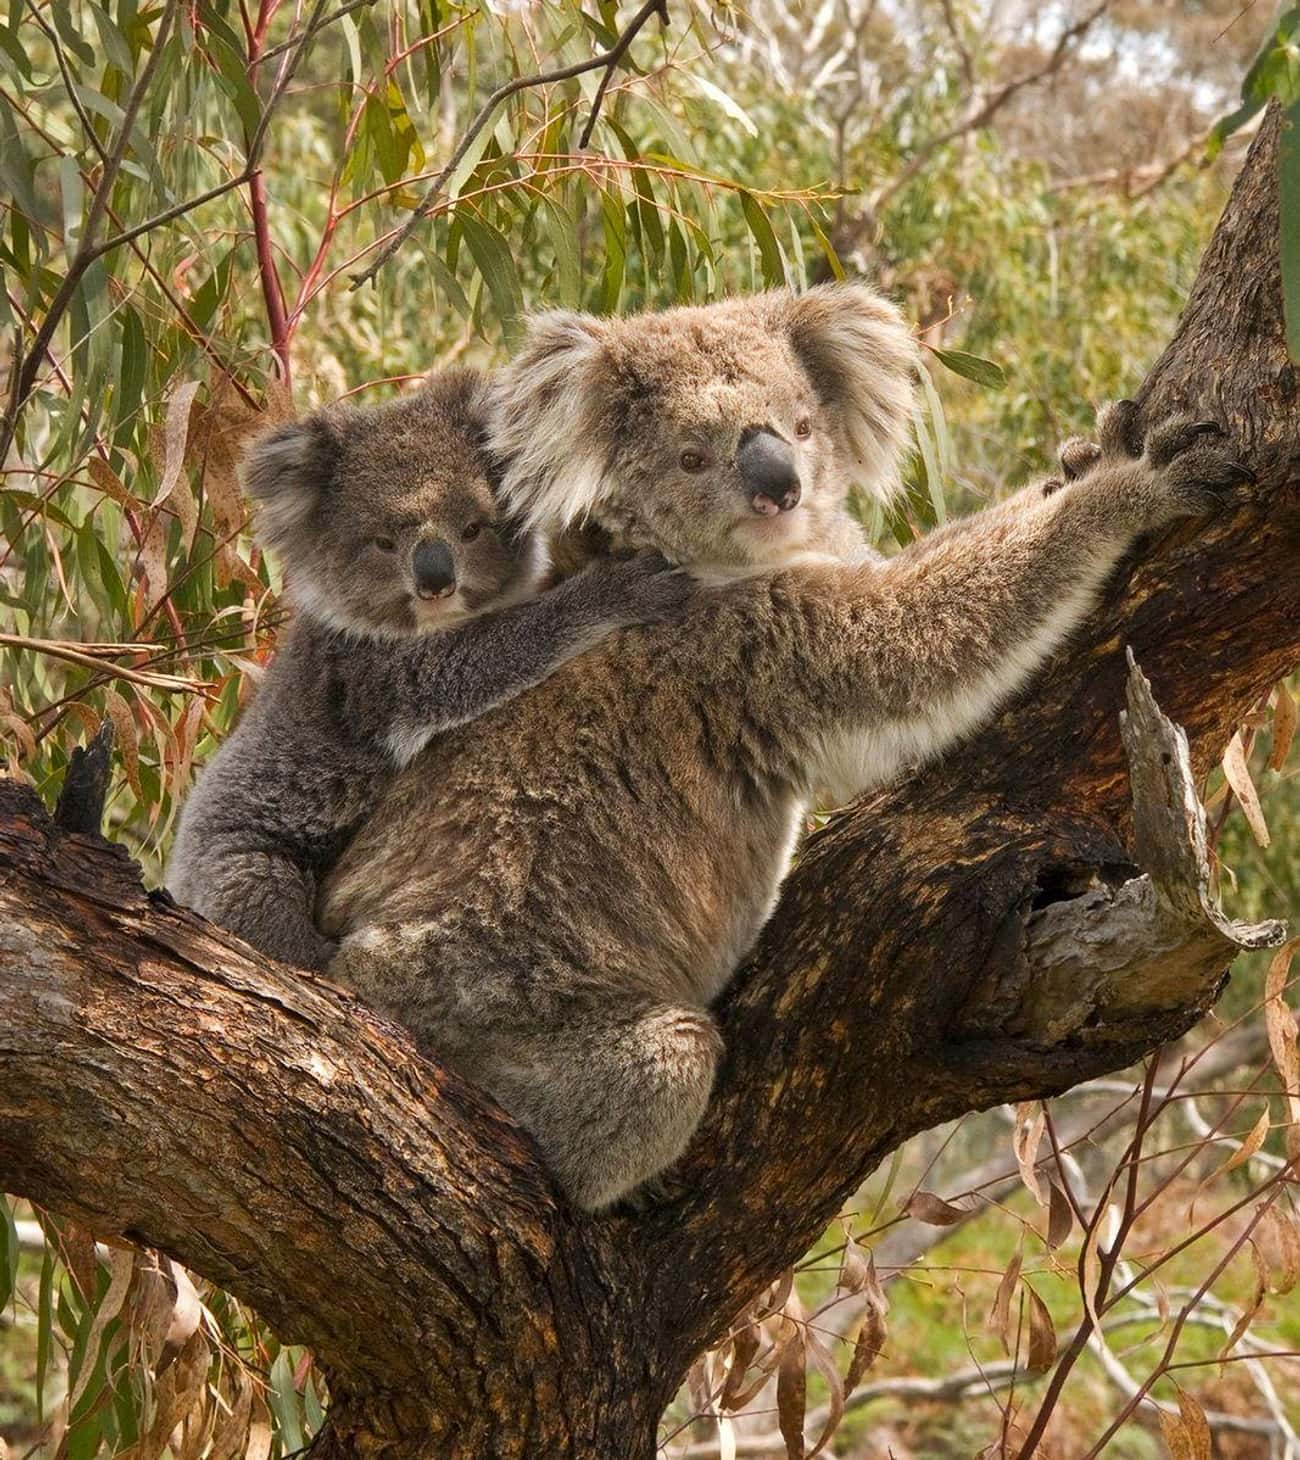 Most Female Koalas Have Chlamy is listed (or ranked) 3 on the list 25 Fascinating Facts You Probably Never Learned About Marsupials